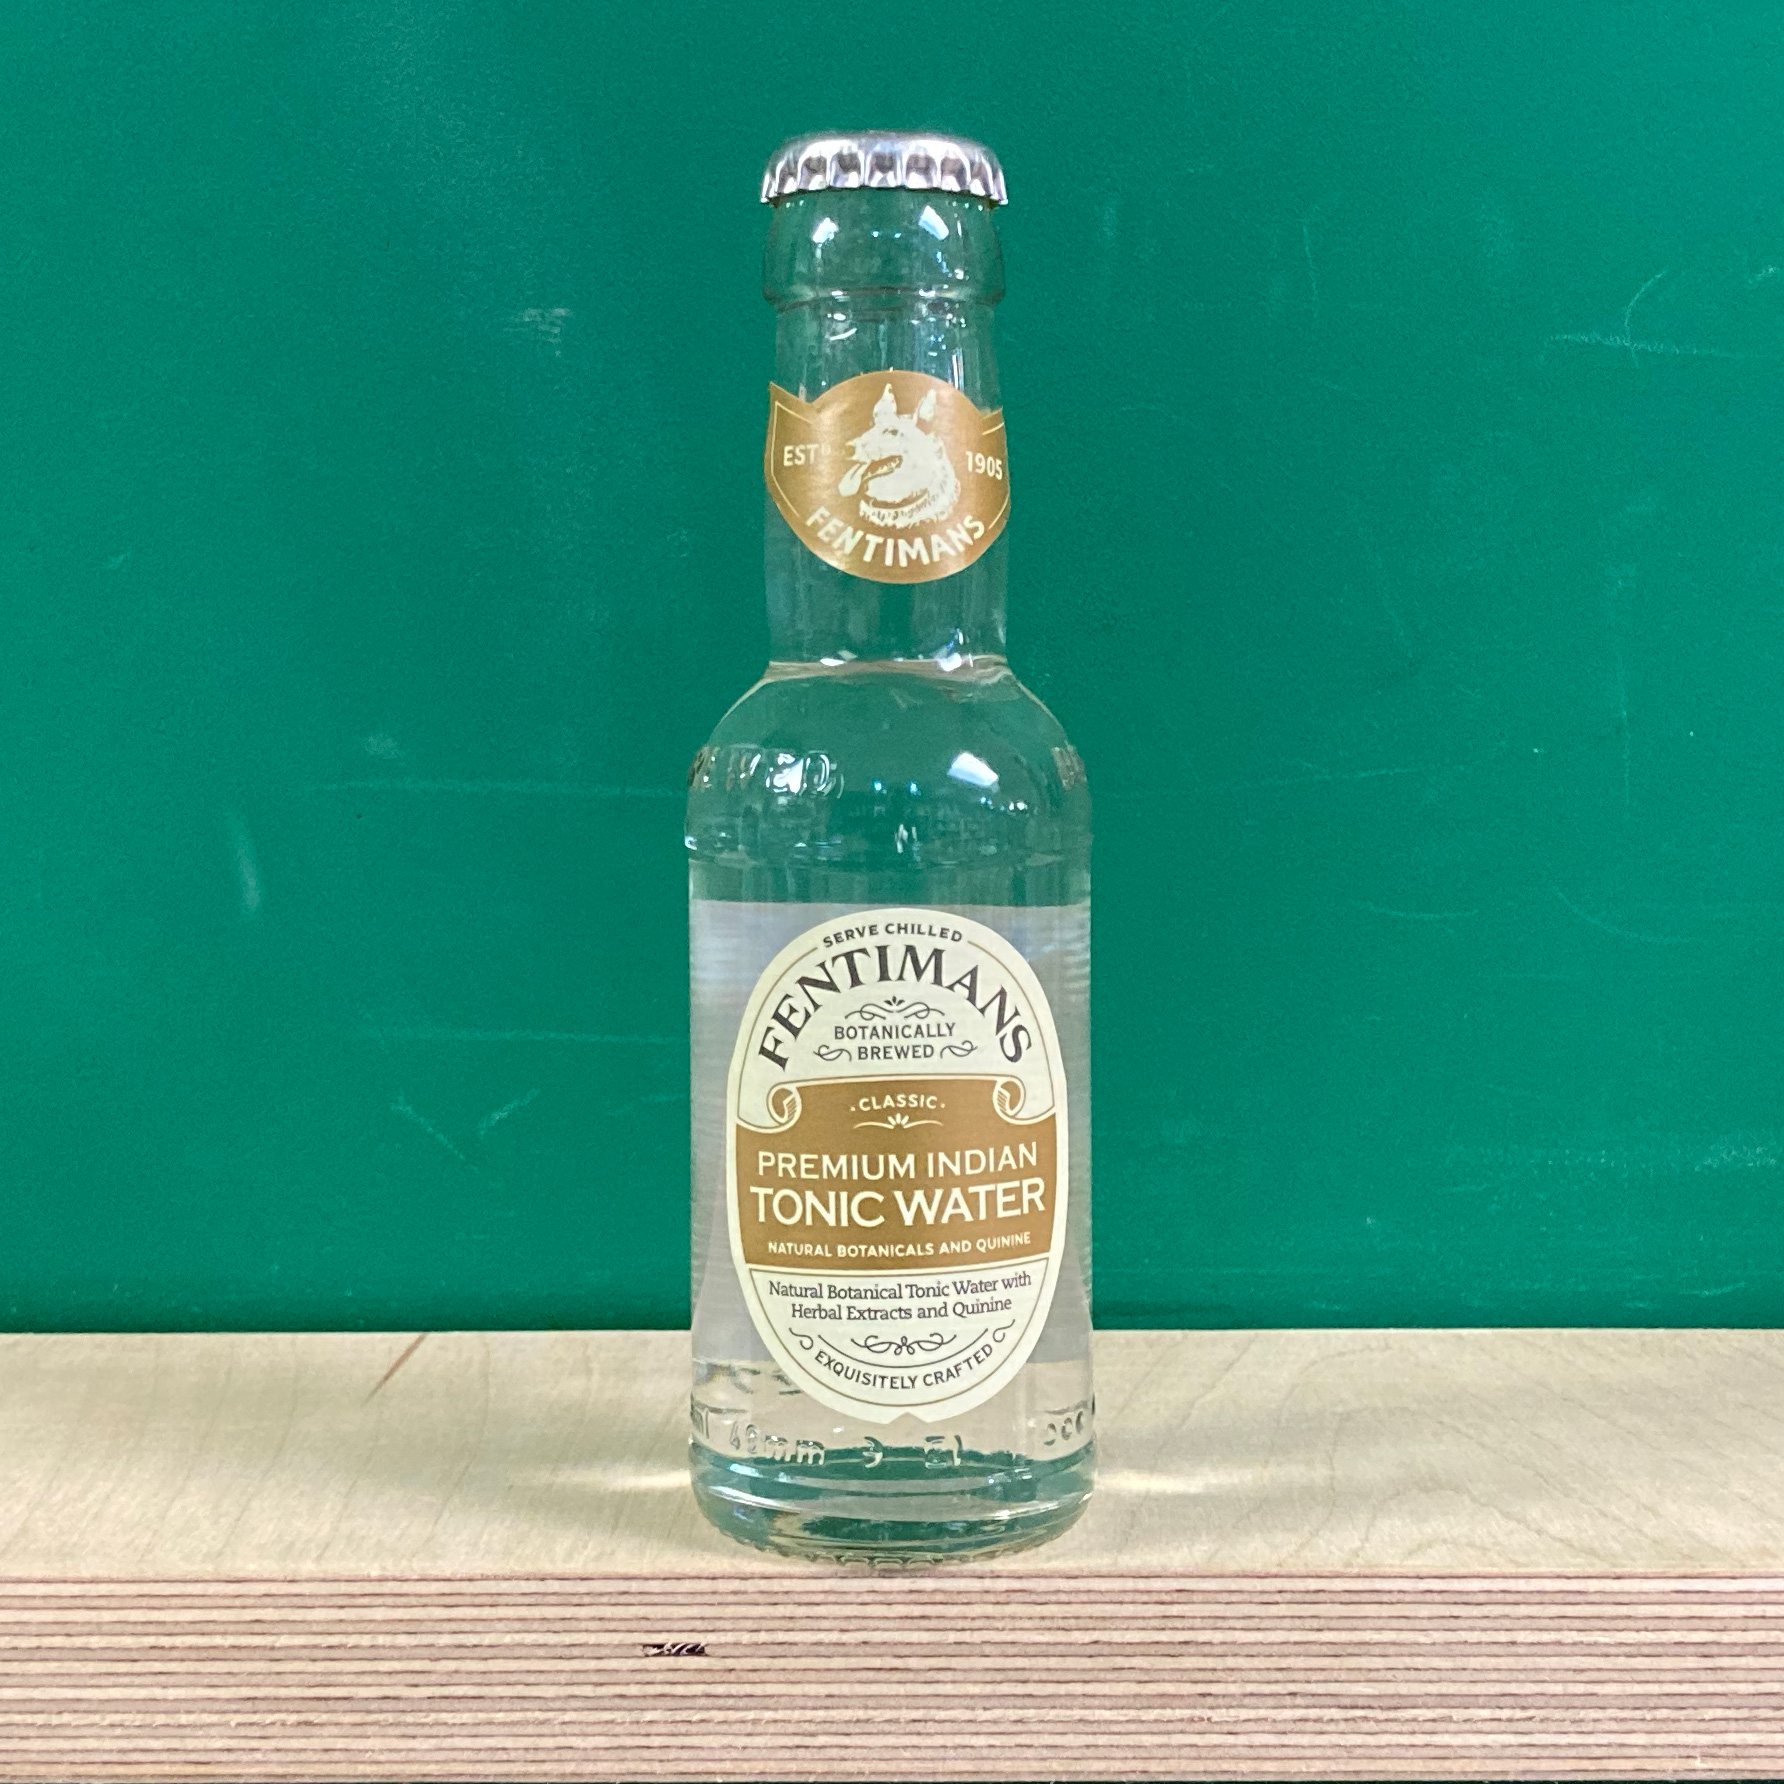 Fentimans Premium Tonic